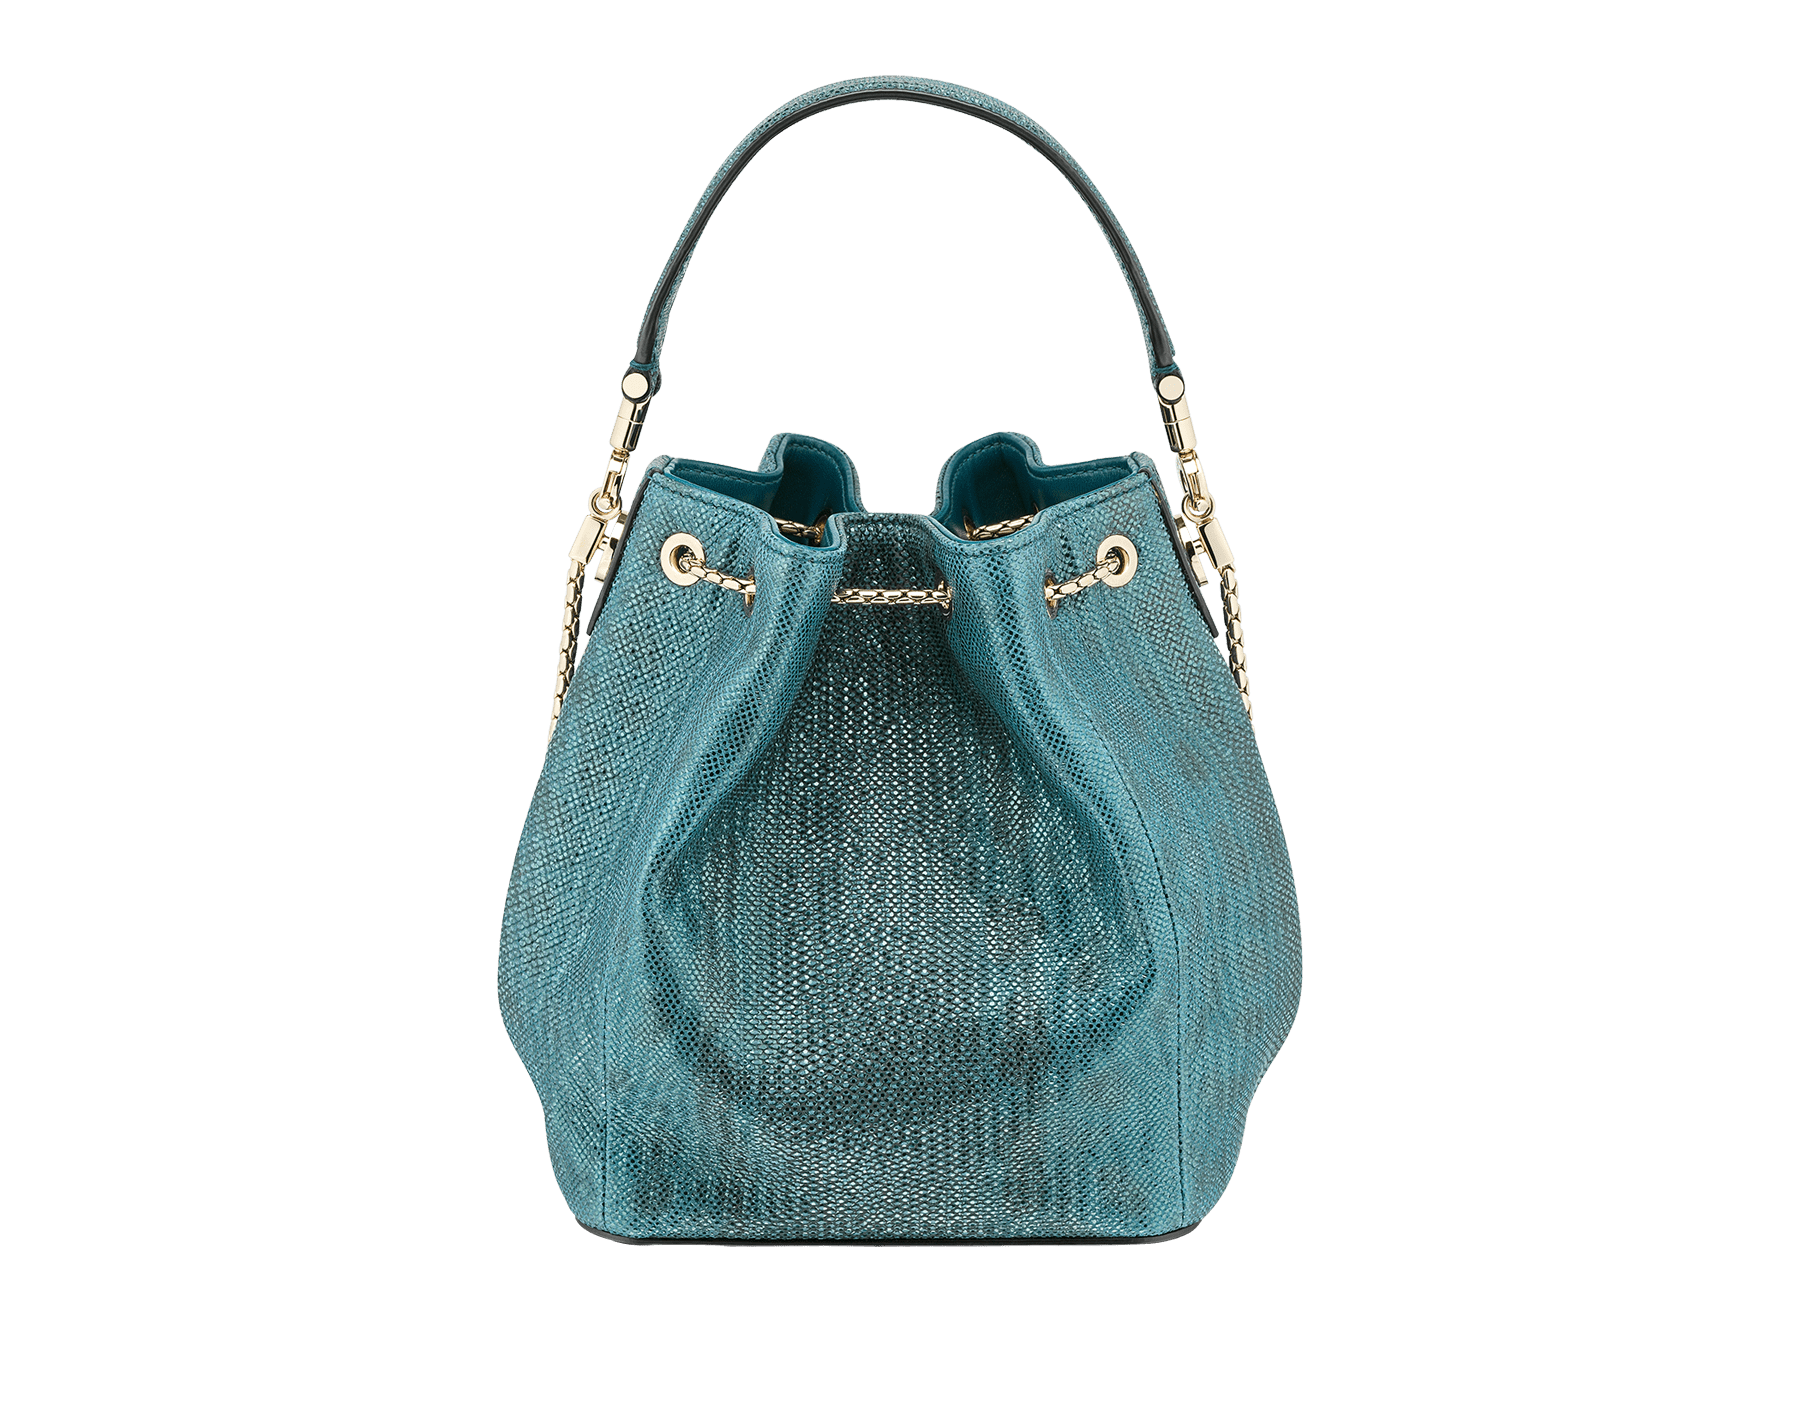 Bucket Serpenti Forever in deep jade metallic karung skin and deep jade nappa internal lining. Hardware in light gold plated brass and snakehead closure in black and glitter deep jade enamel, with eyes in black onyx. 287950 image 3